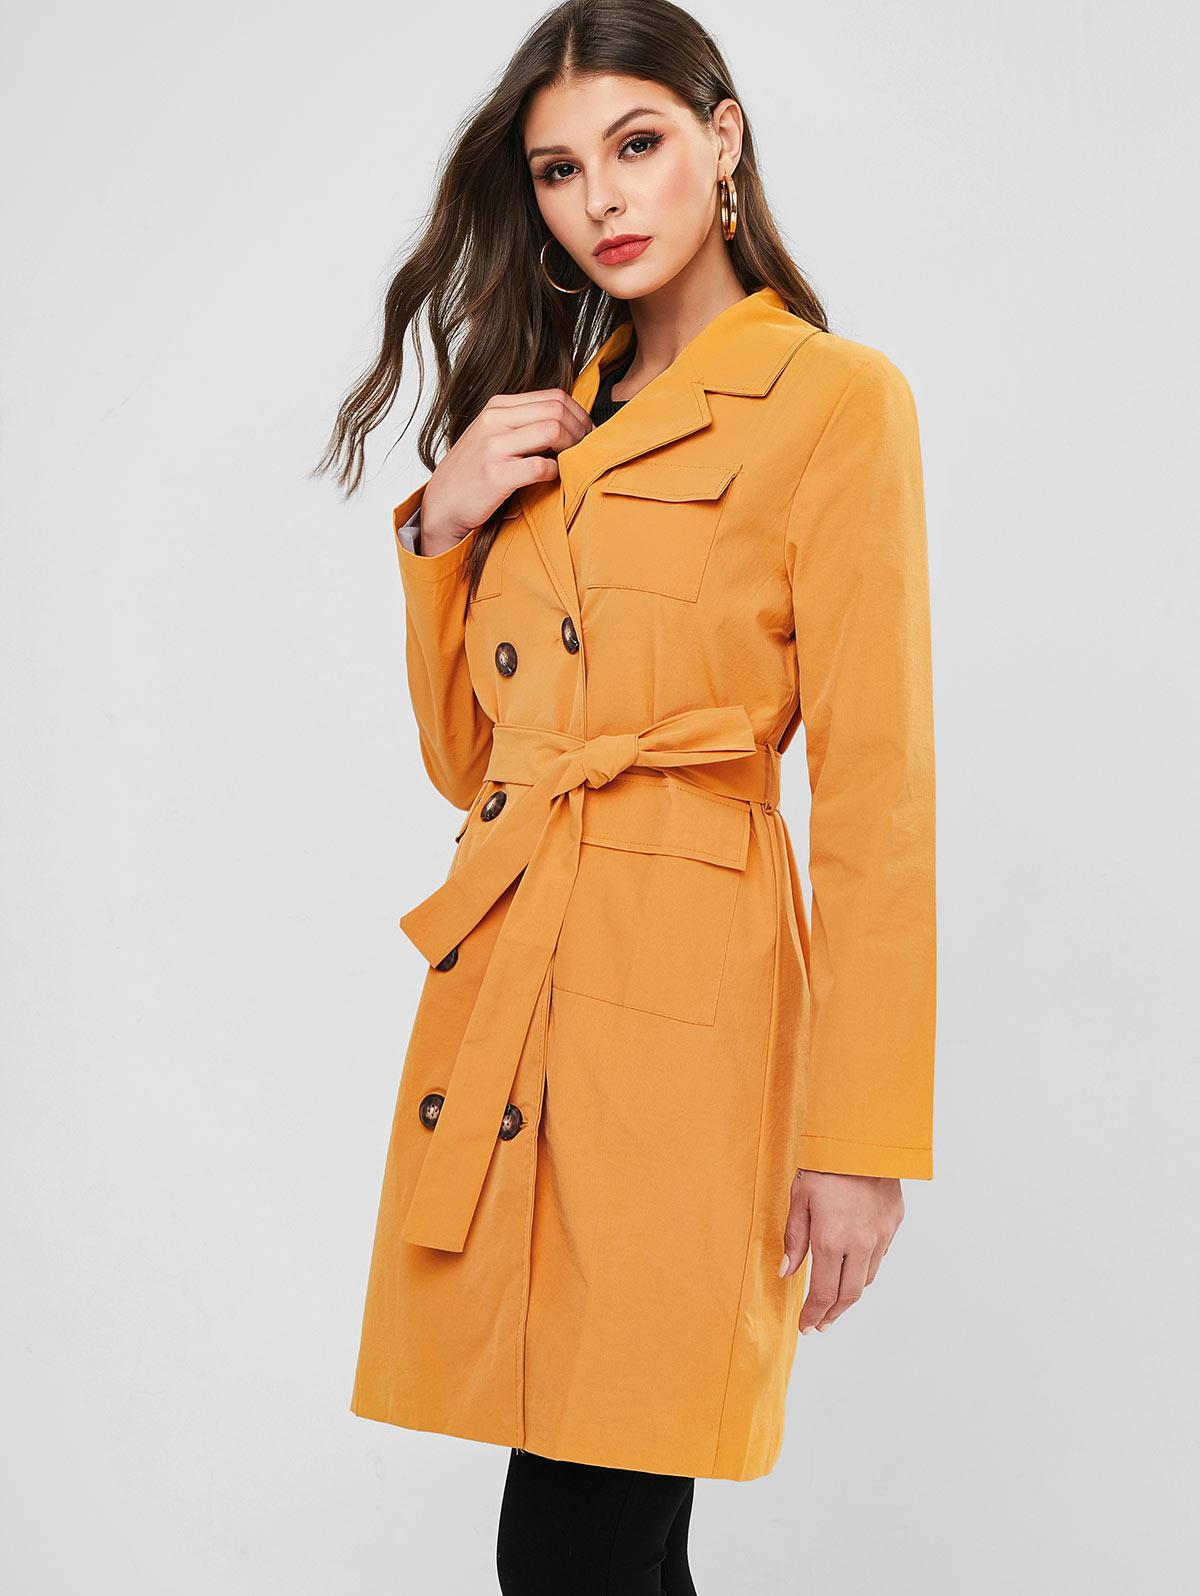 Belted Double Breasted Flap Pockets Trench Coat